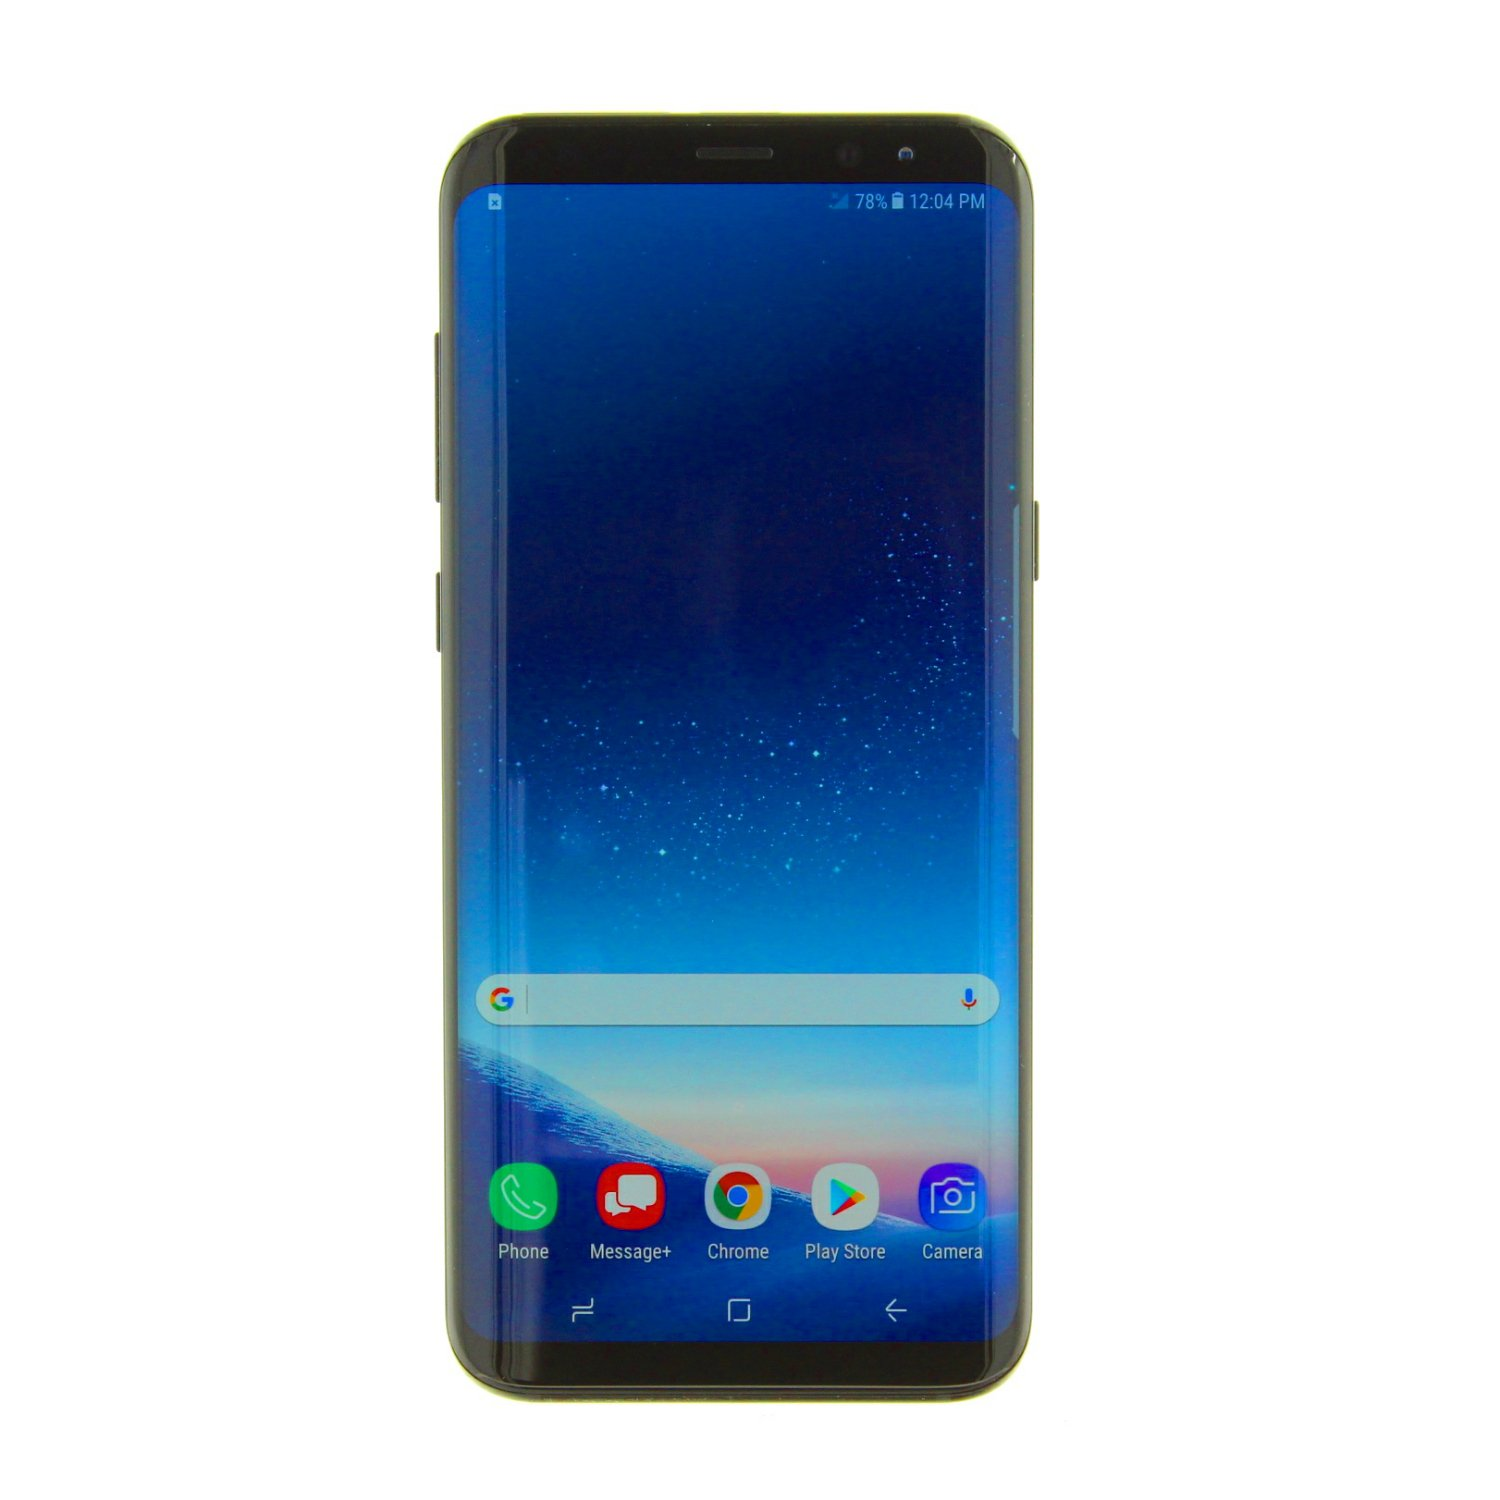 "Samsung Galaxy S8 (G950u GSM only) 5.8"" Unlocked Smartphone for All GSM Carriers - Midnight Black (Renewed)"